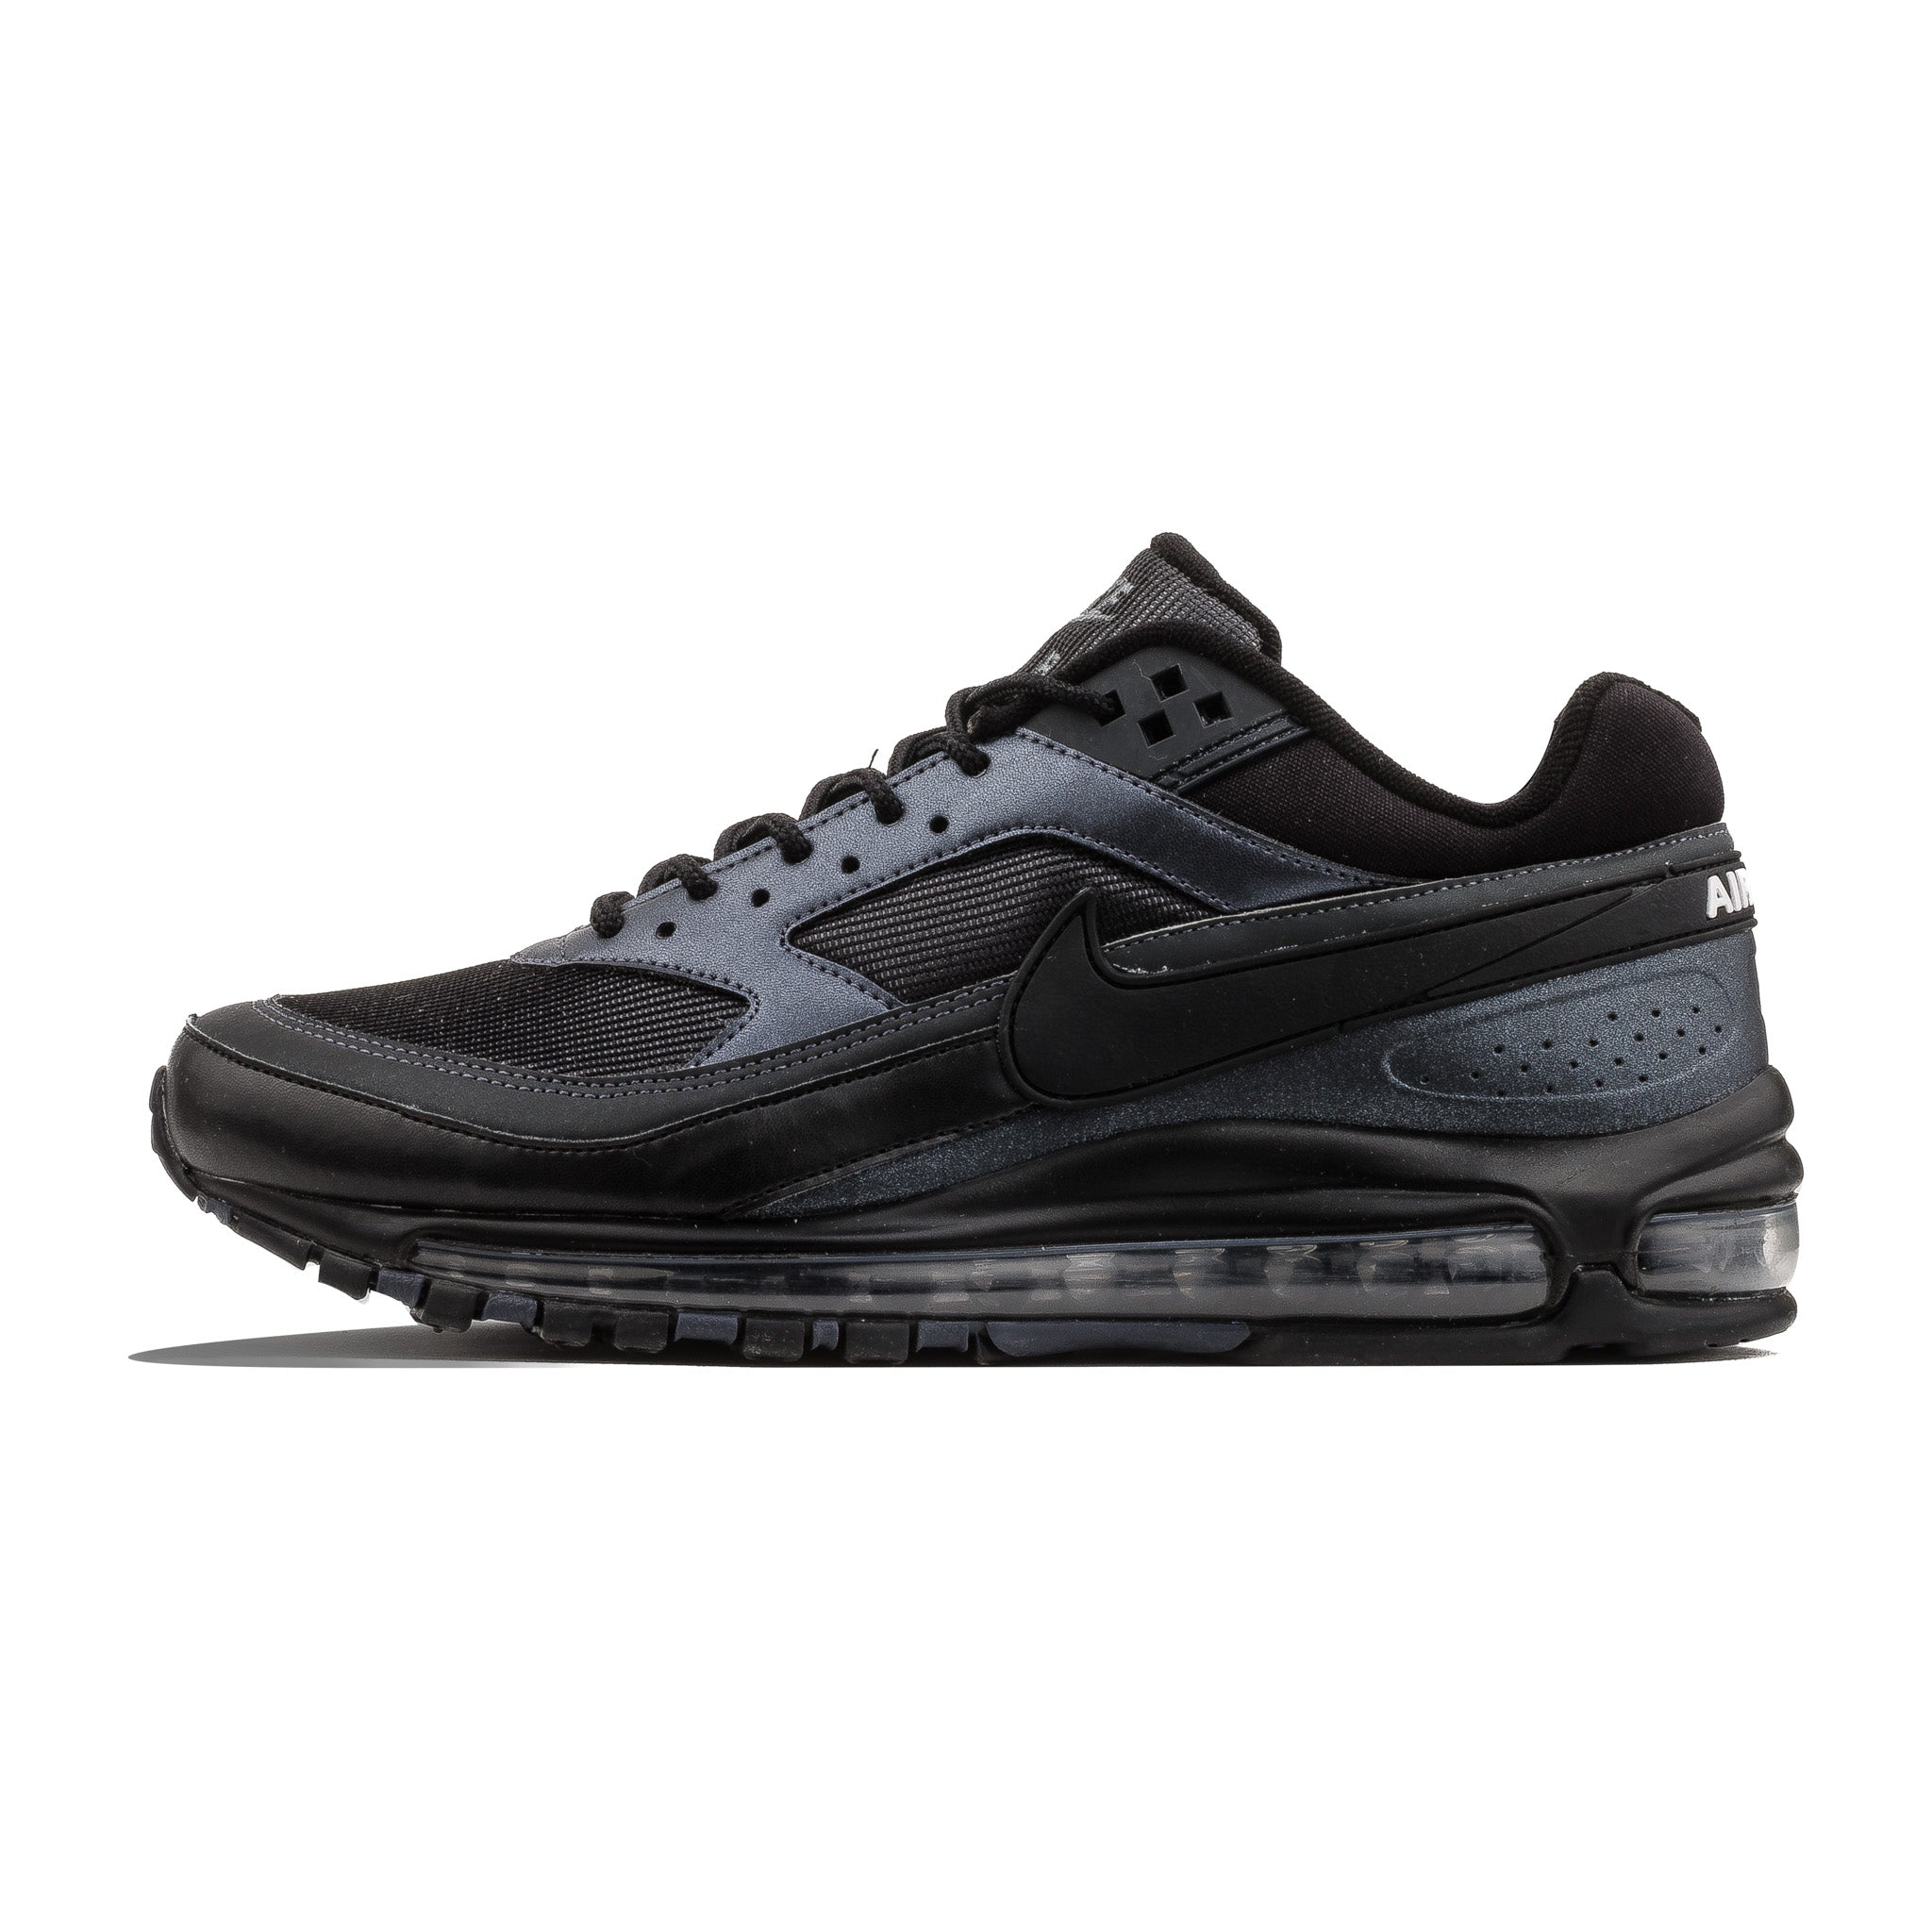 Air Max 97/BW AO2406-001 Black